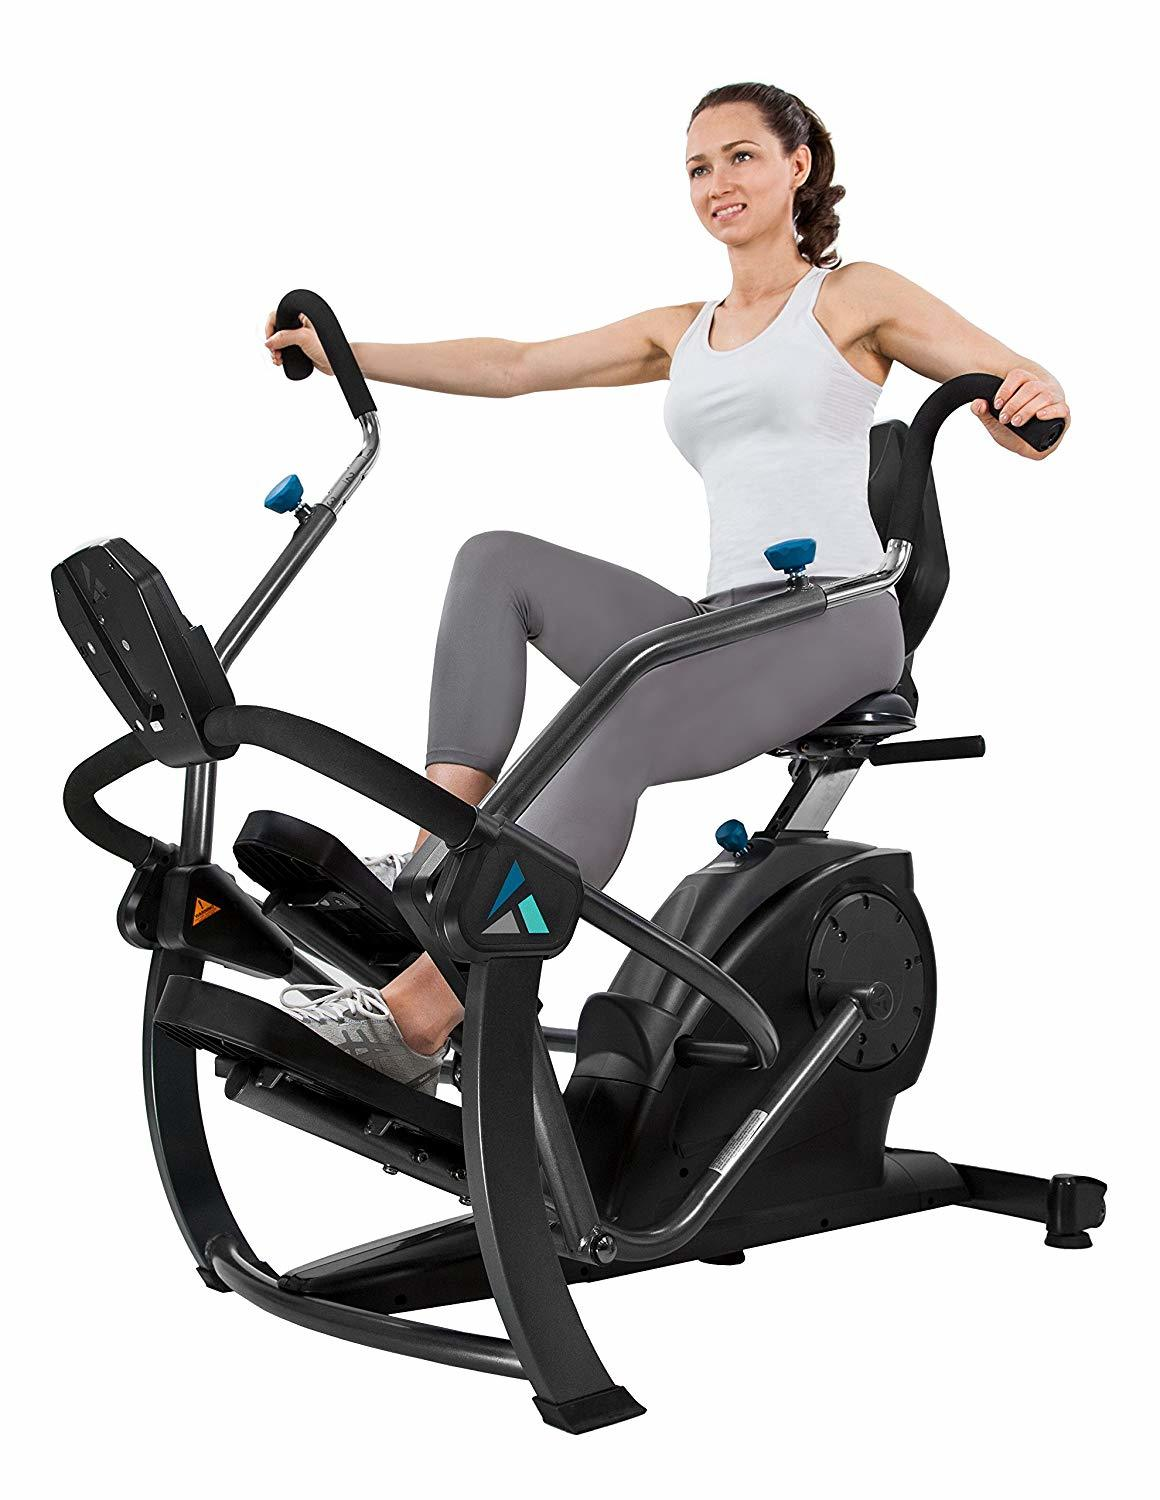 7 Best recumbent exercise bikes reviewed 11